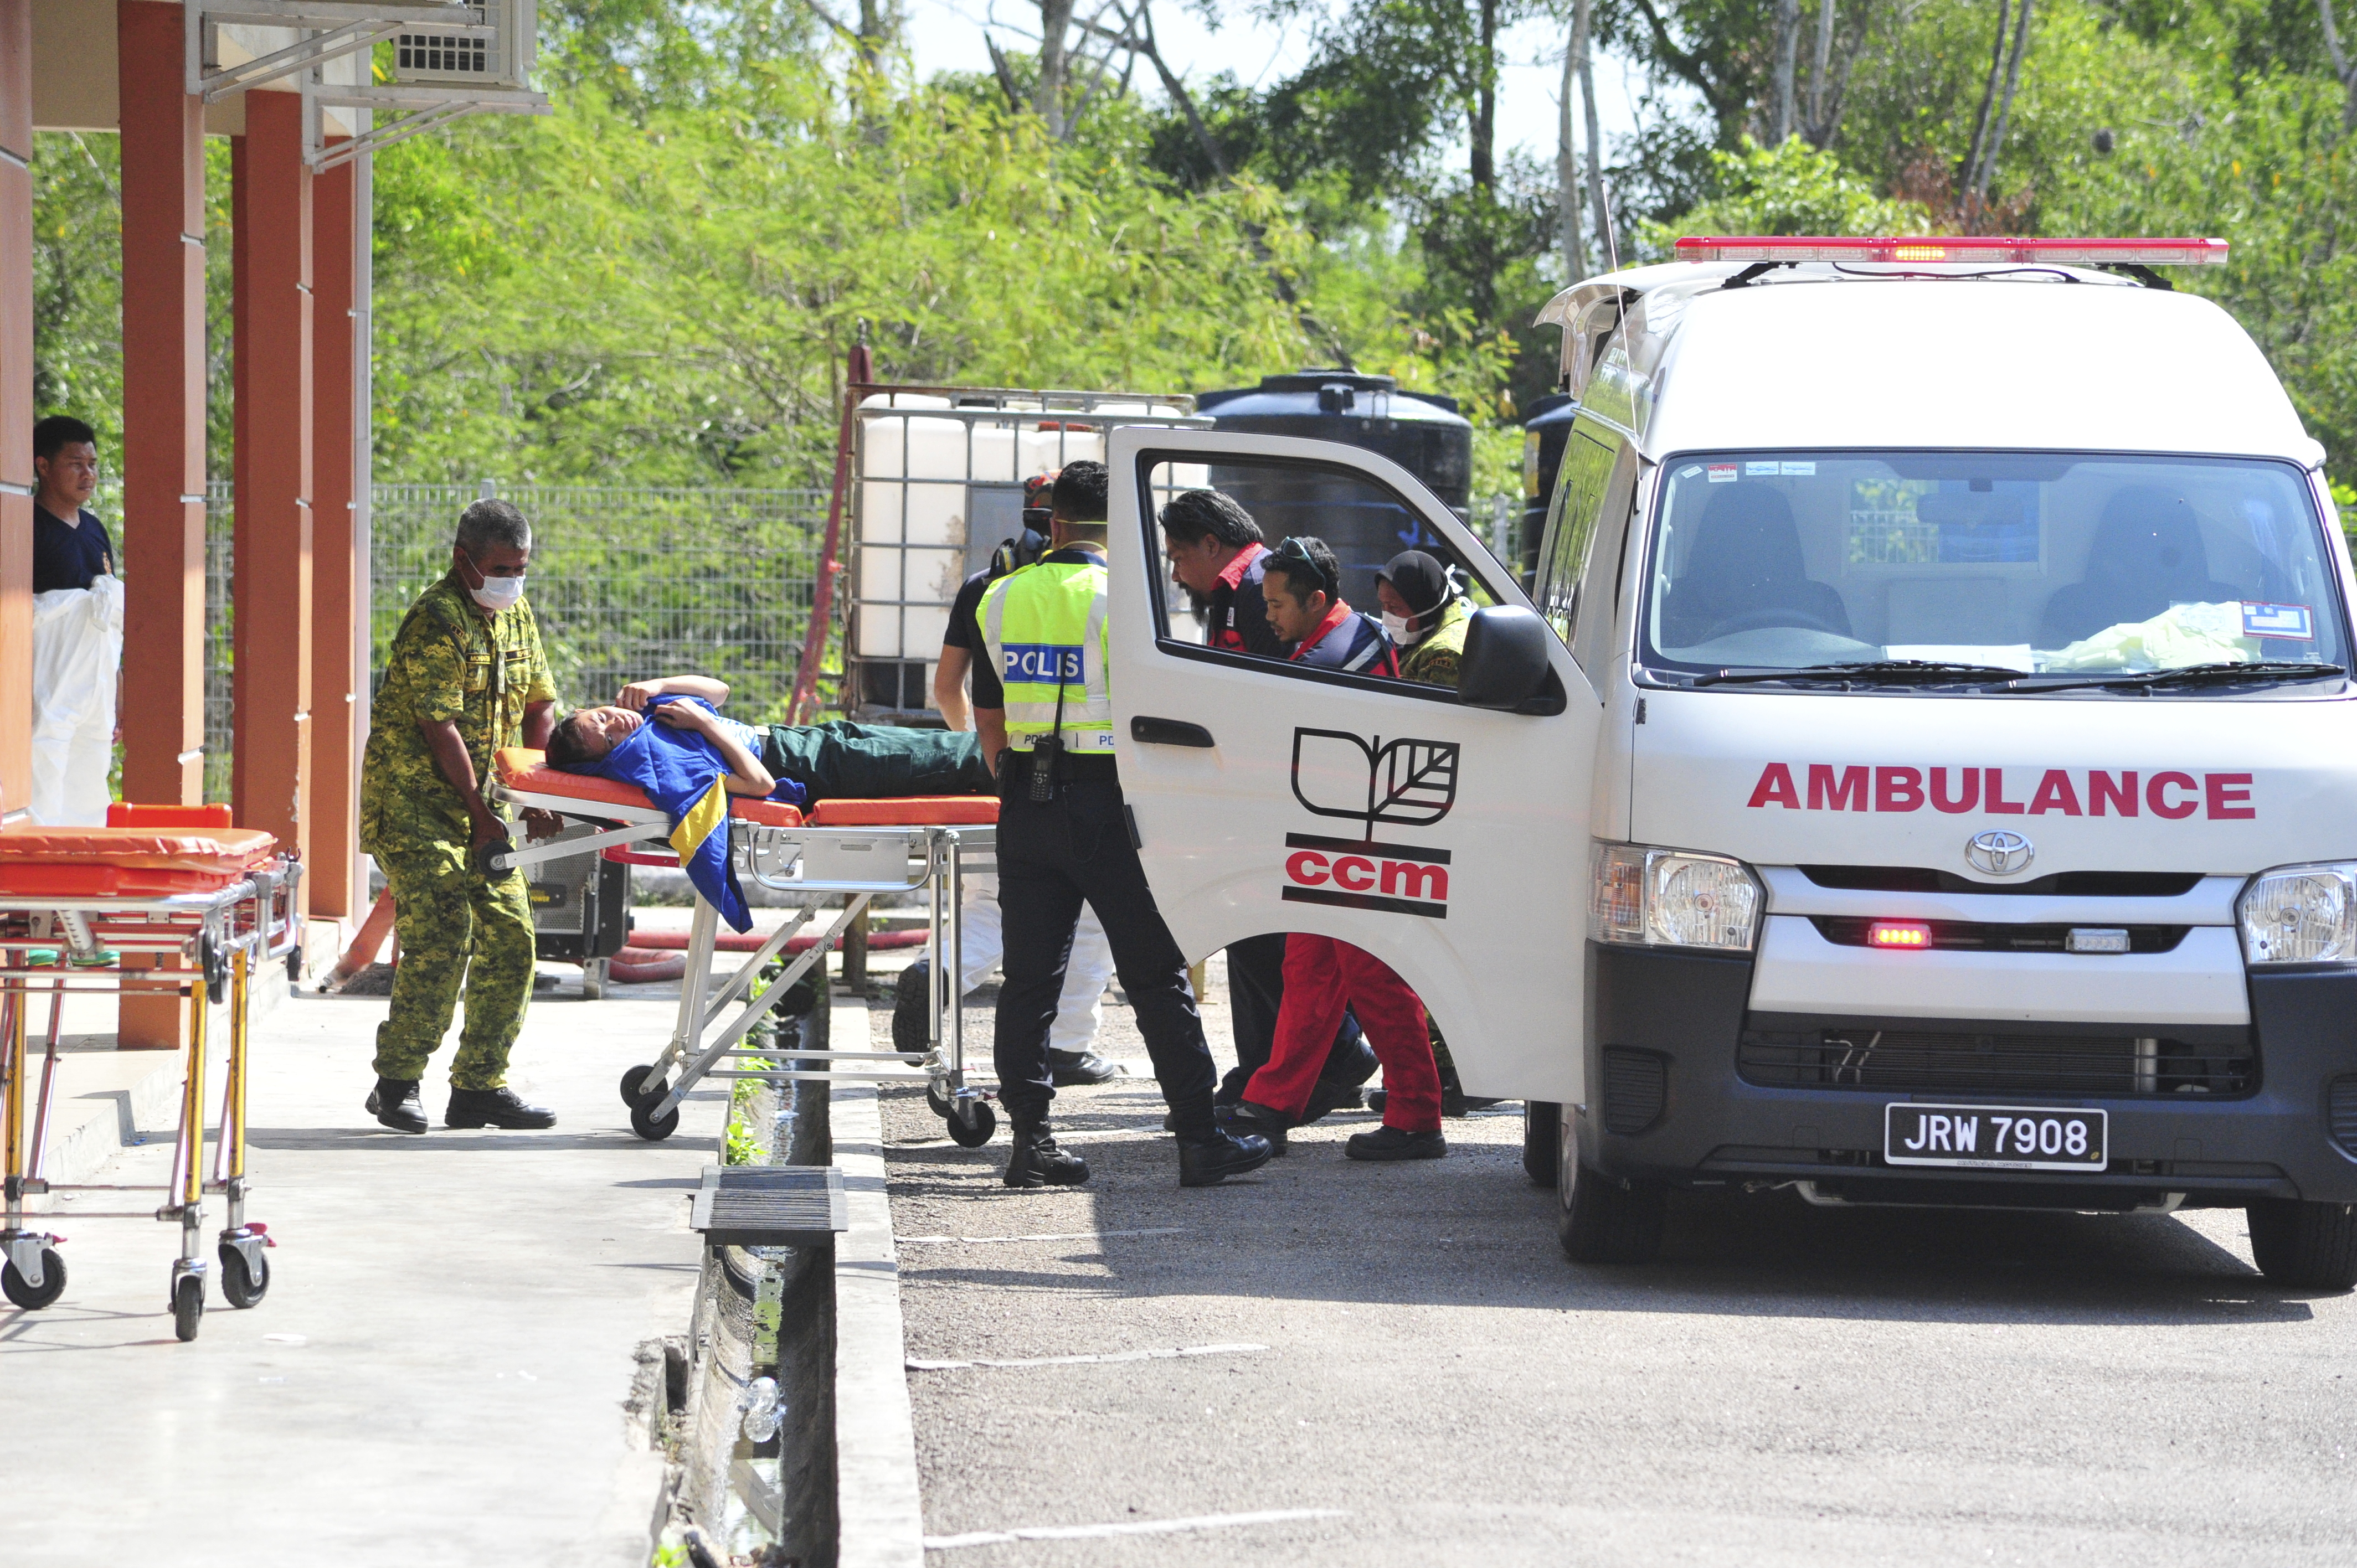 Emergency personnel unload a student from an ambulance after toxic chemical spill in Pasir Gudang, Johor state on Mar. 13, 2019.